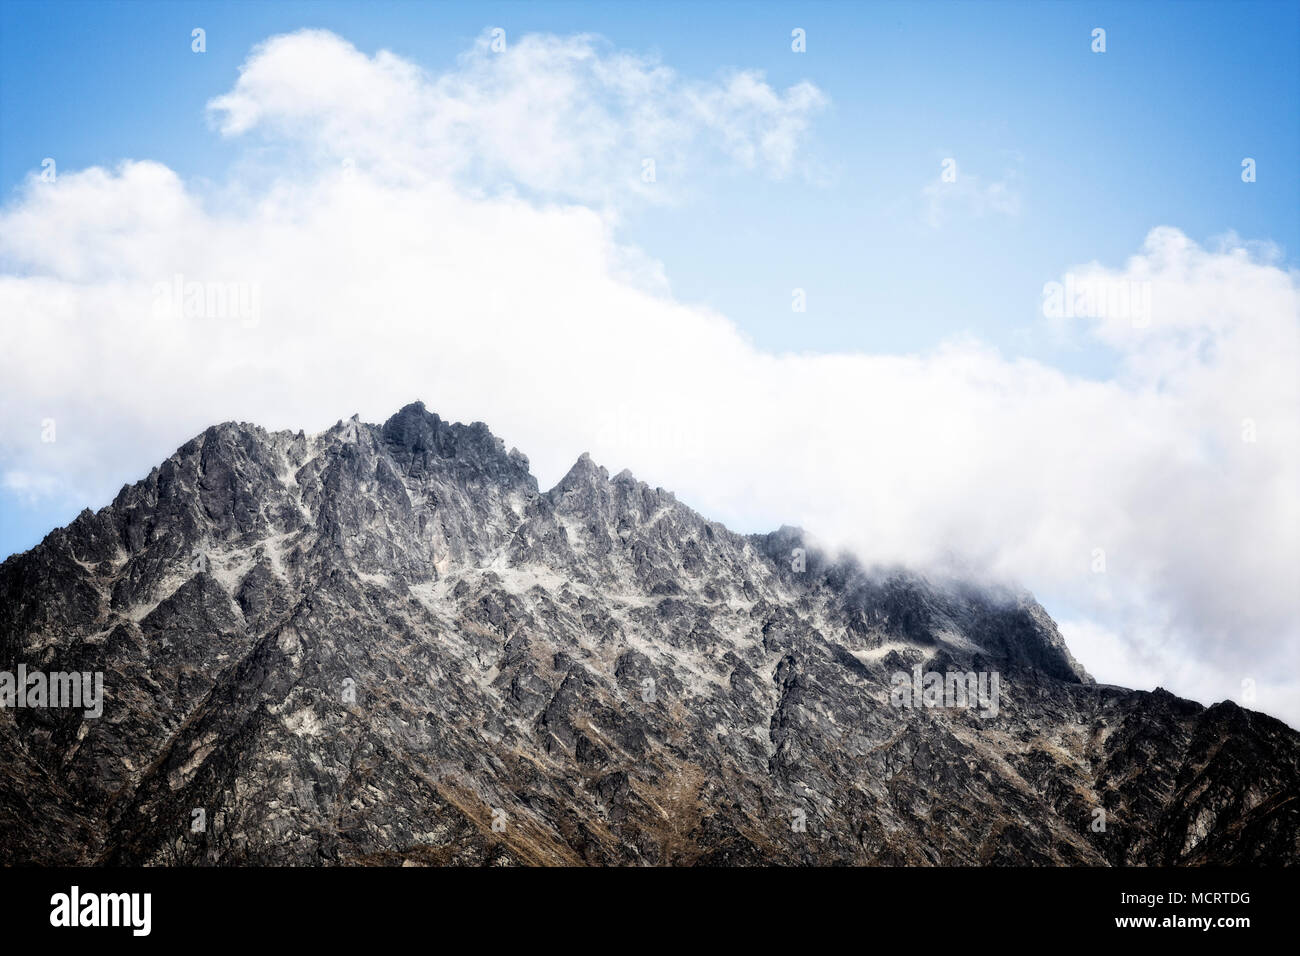 The Remarkable mountain range near Queenstown, South Island, New Zealand. - Stock Image